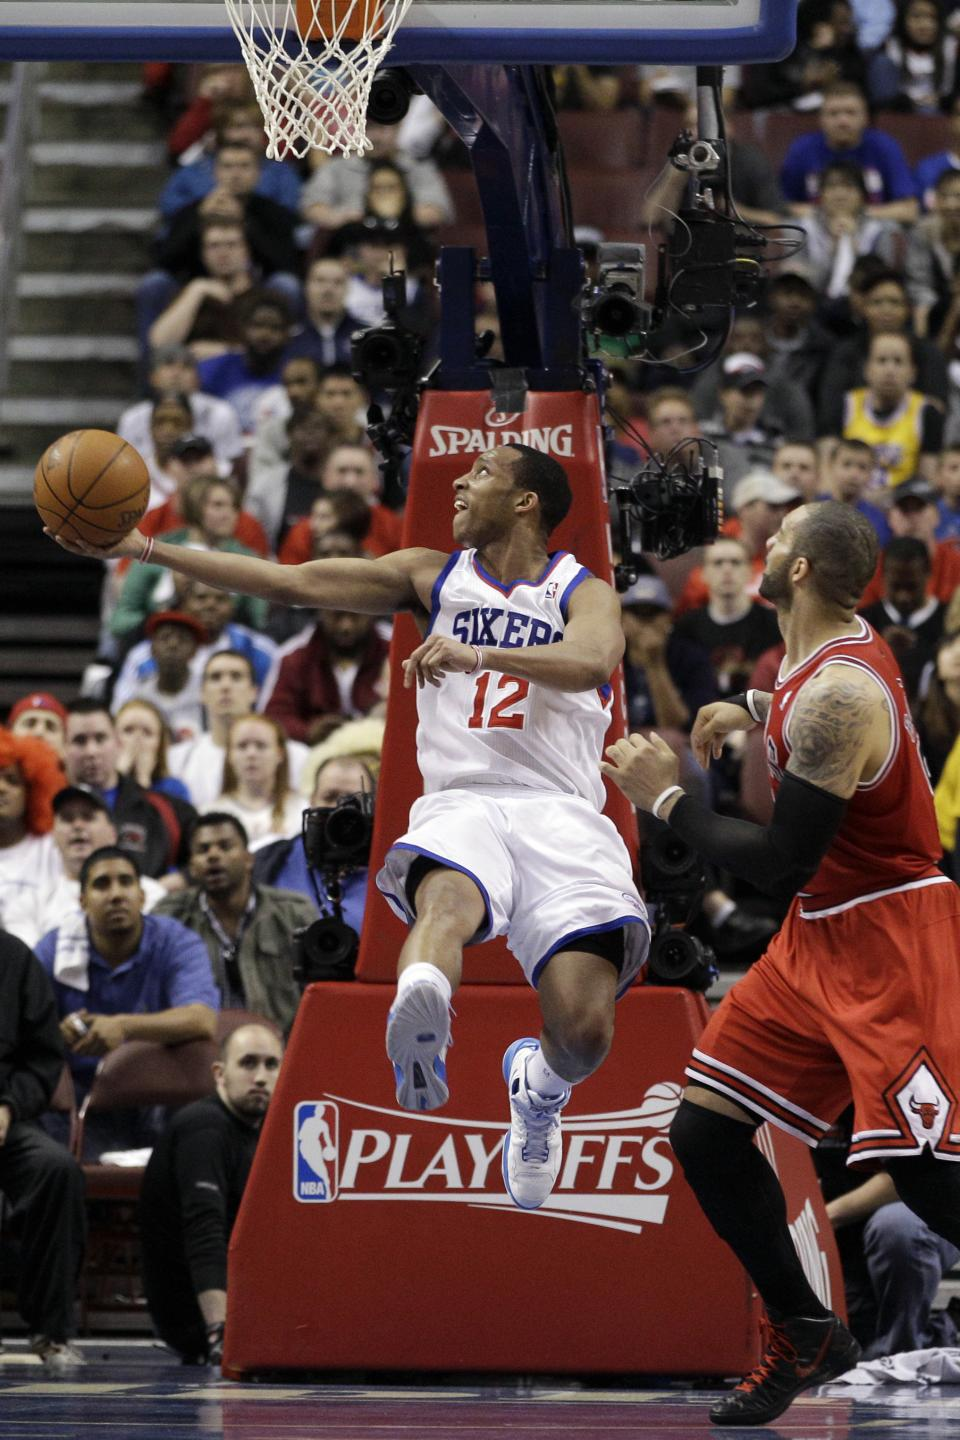 Philadelphia 76ers' Evan Turner (12)  goes up for a shot as Chicago Bulls' Carlos Boozer, right, defends in the first half of Game 6 in an NBA basketball first-round playoff series on Thursday, May 10, 2012, in Philadelphia. (AP Photo/Matt Slocum)